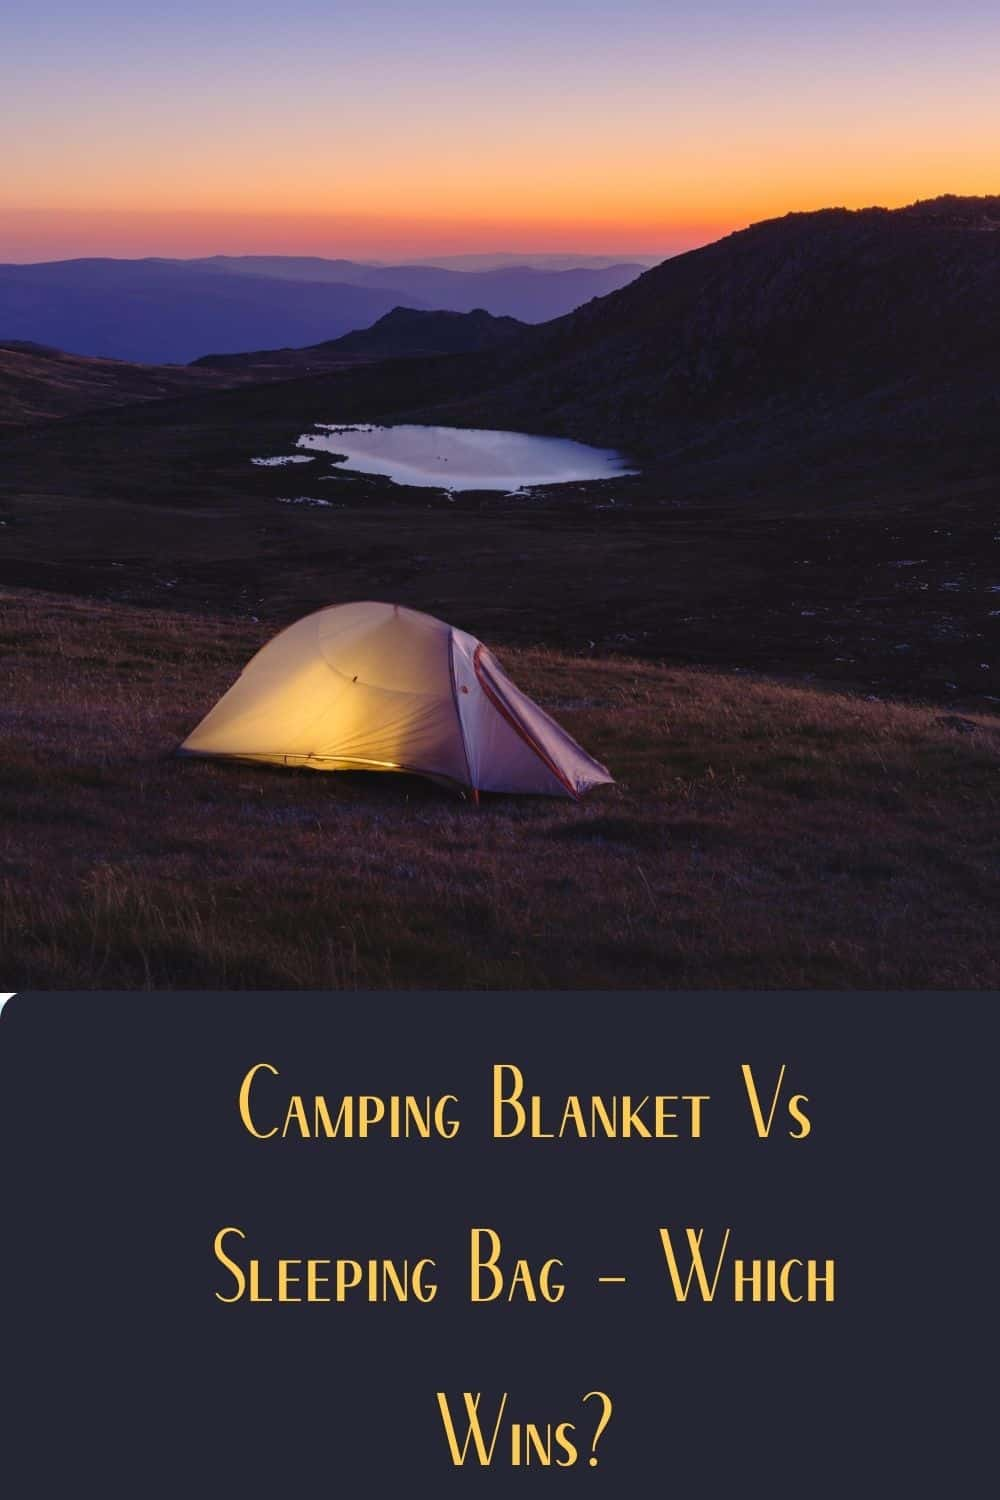 Pinterest image for Camping Blanket Vs Sleeping Bag - Which Wins?